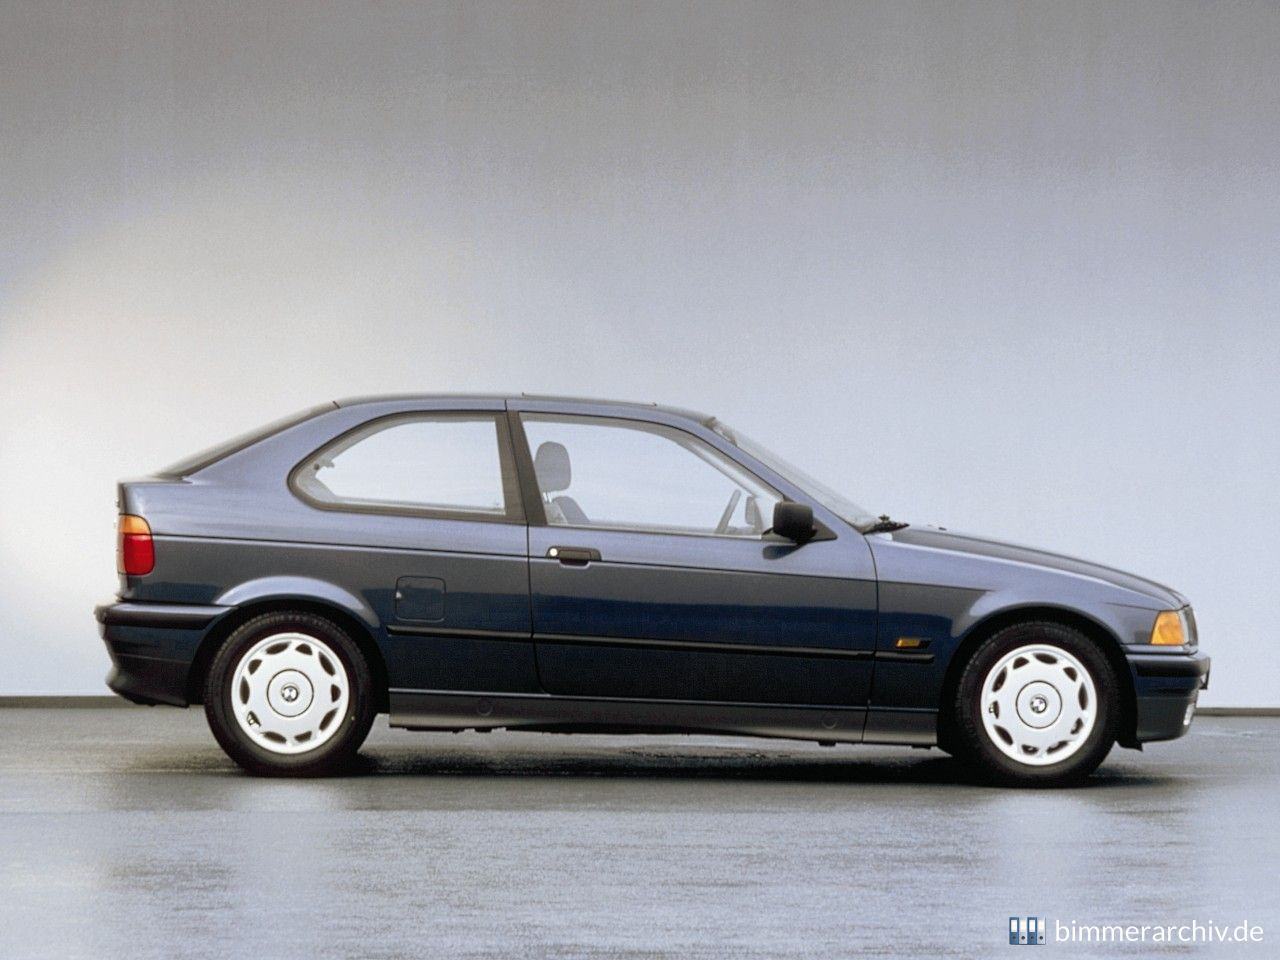 Model Archive For Bmw Models Bmw 316i Compact Bmwarchive Org